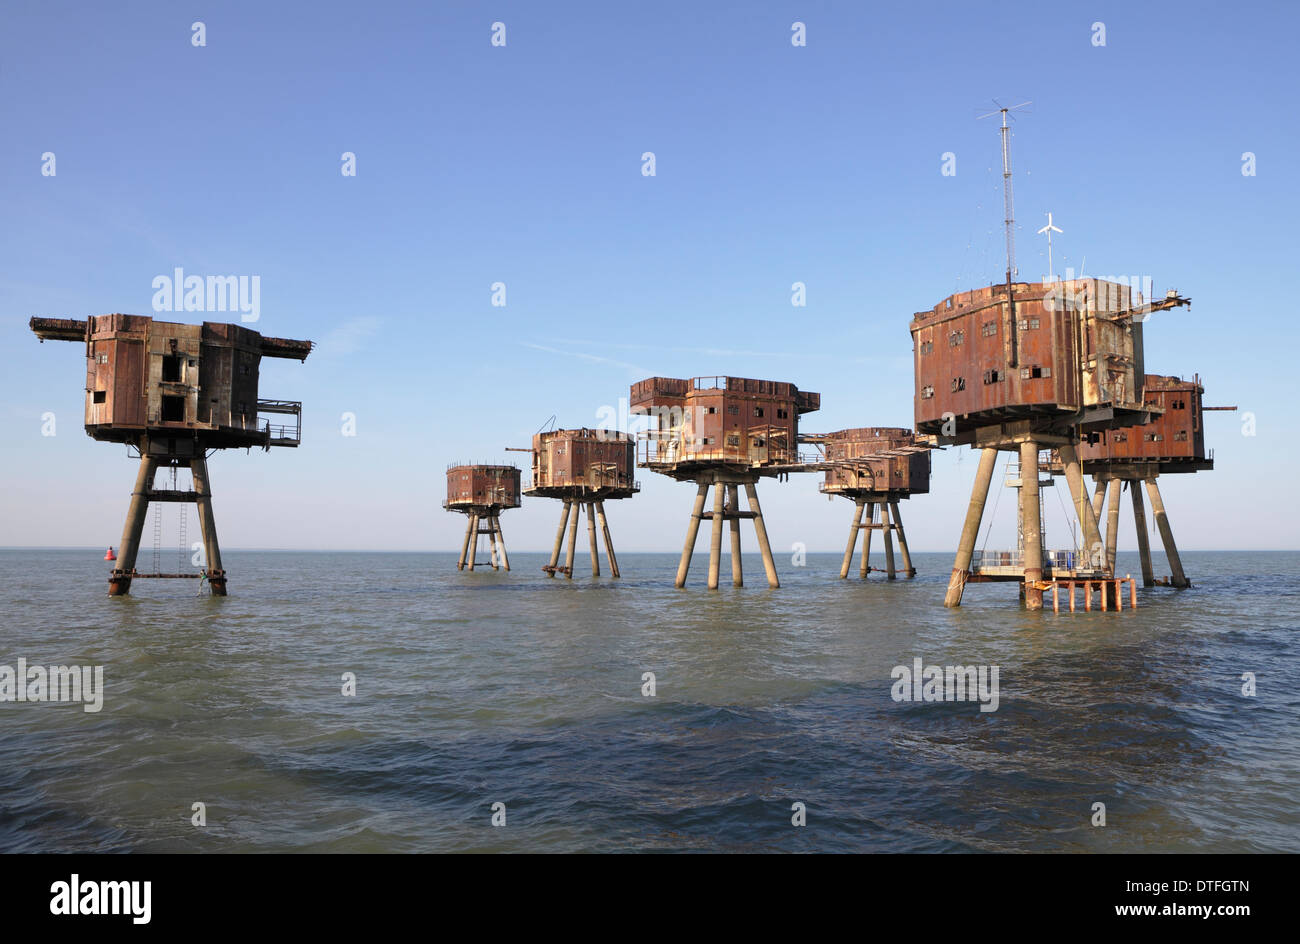 Maunsell sea forts. Red sands forts Thames estuary now abandoned - Stock Image